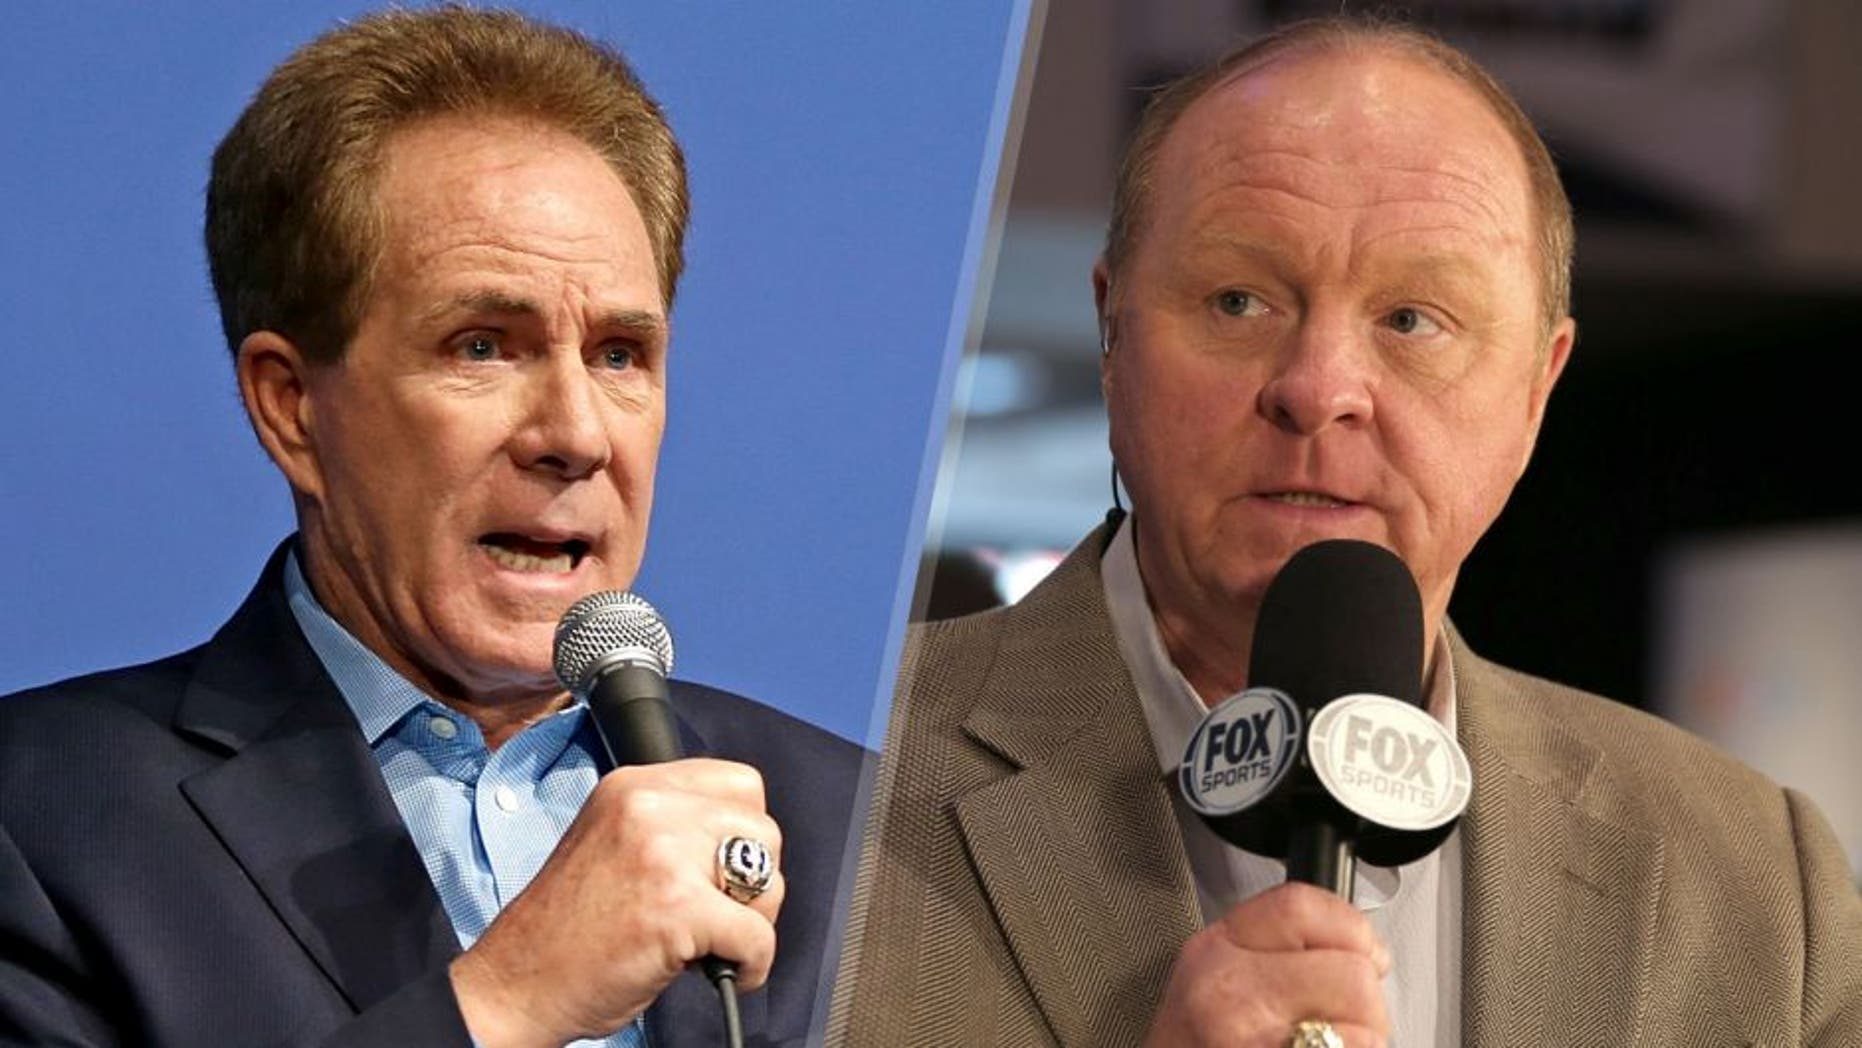 CHARLOTTE, NC - JANUARY 19: Darrell Waltrip makes a point about fellow former NASCAR driver Jeff Gordon leaving the race car for the television booth during the NASCAR 2016 Charlotte Motor Speedway Media Tour on January 19, 2016 in Charlotte, North Carolina. Bob Leverone / NASCAR via Getty Images (Photo by Bob Leverone/NASCAR via Getty Images) USA -Feb 13: Larry McReynolds with Fox Sports conducts an interview during the 2014 NASCAR Media Day at the Daytona International Speedway on Feb 13, 2014 in the United States. (Photo by Jim Fluharty/NASCAR Illustrated/Sporting News via Getty Images)